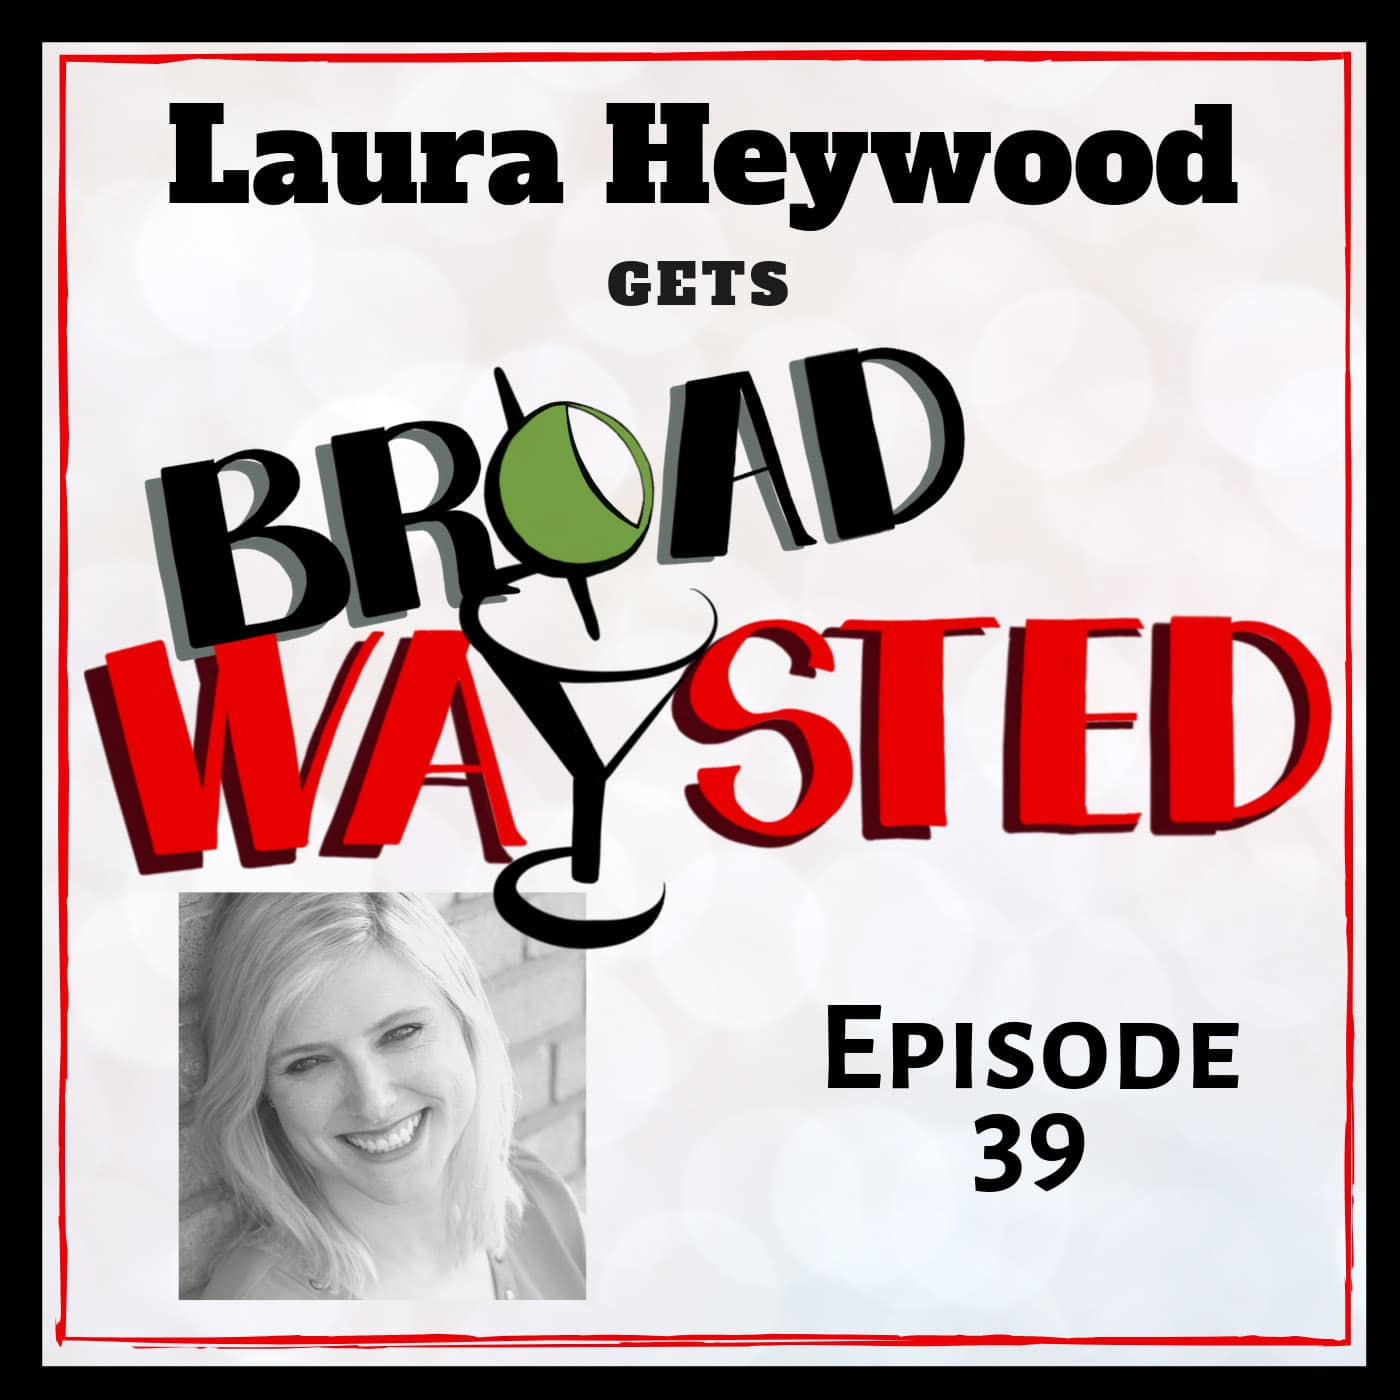 Broadwaysted Ep 39 Laura Heywood